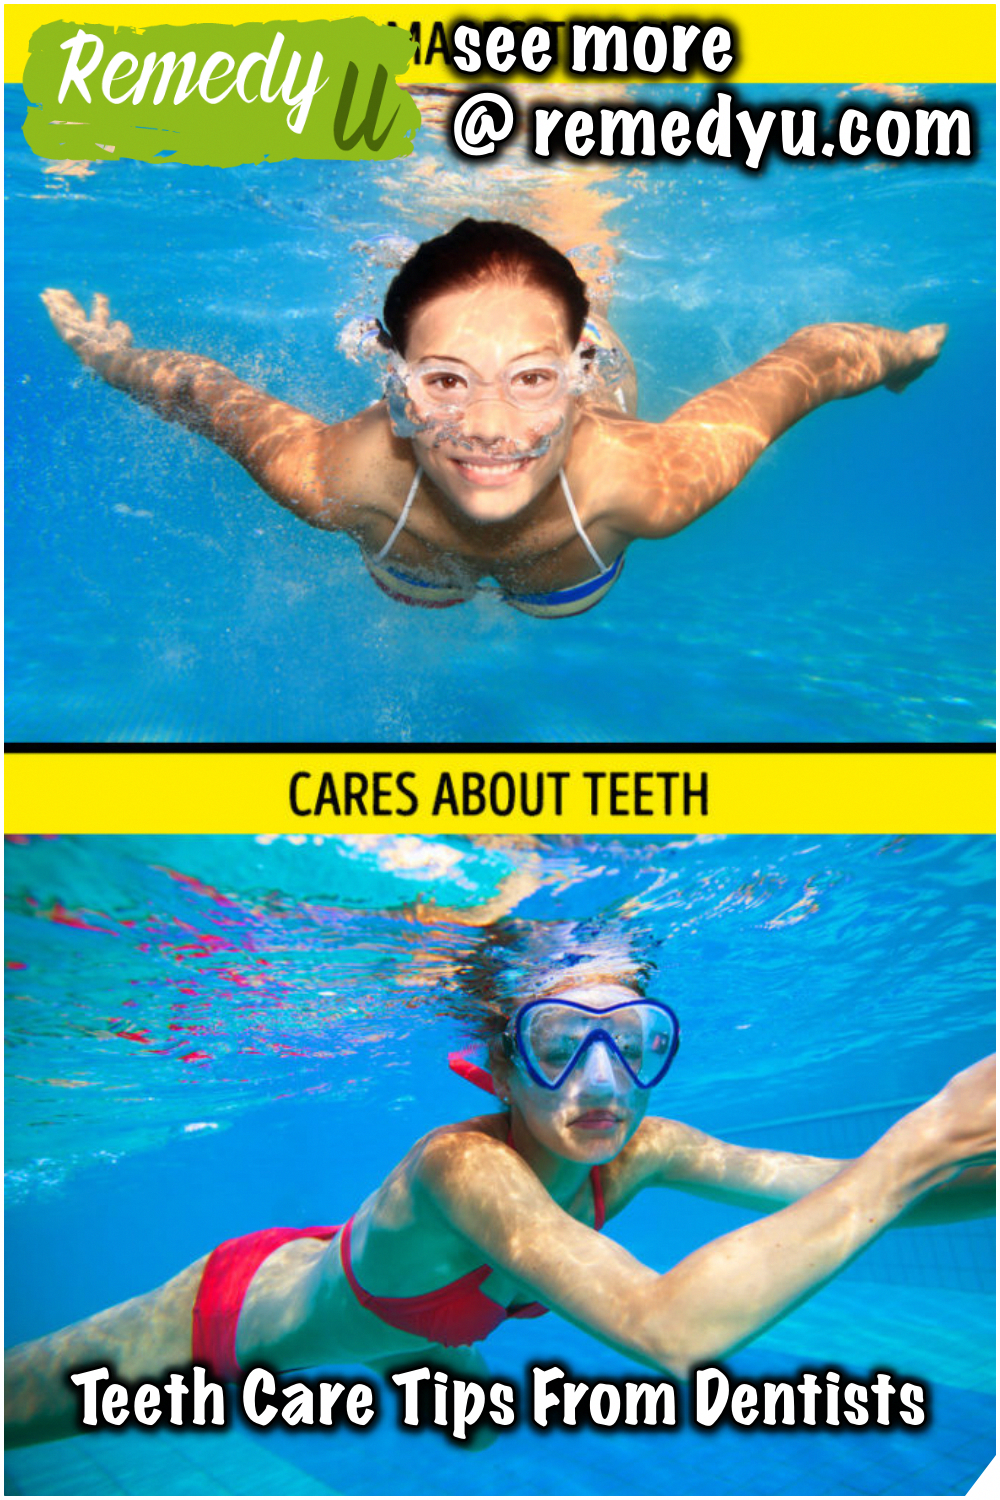 Teeth Care Tips From Dentists